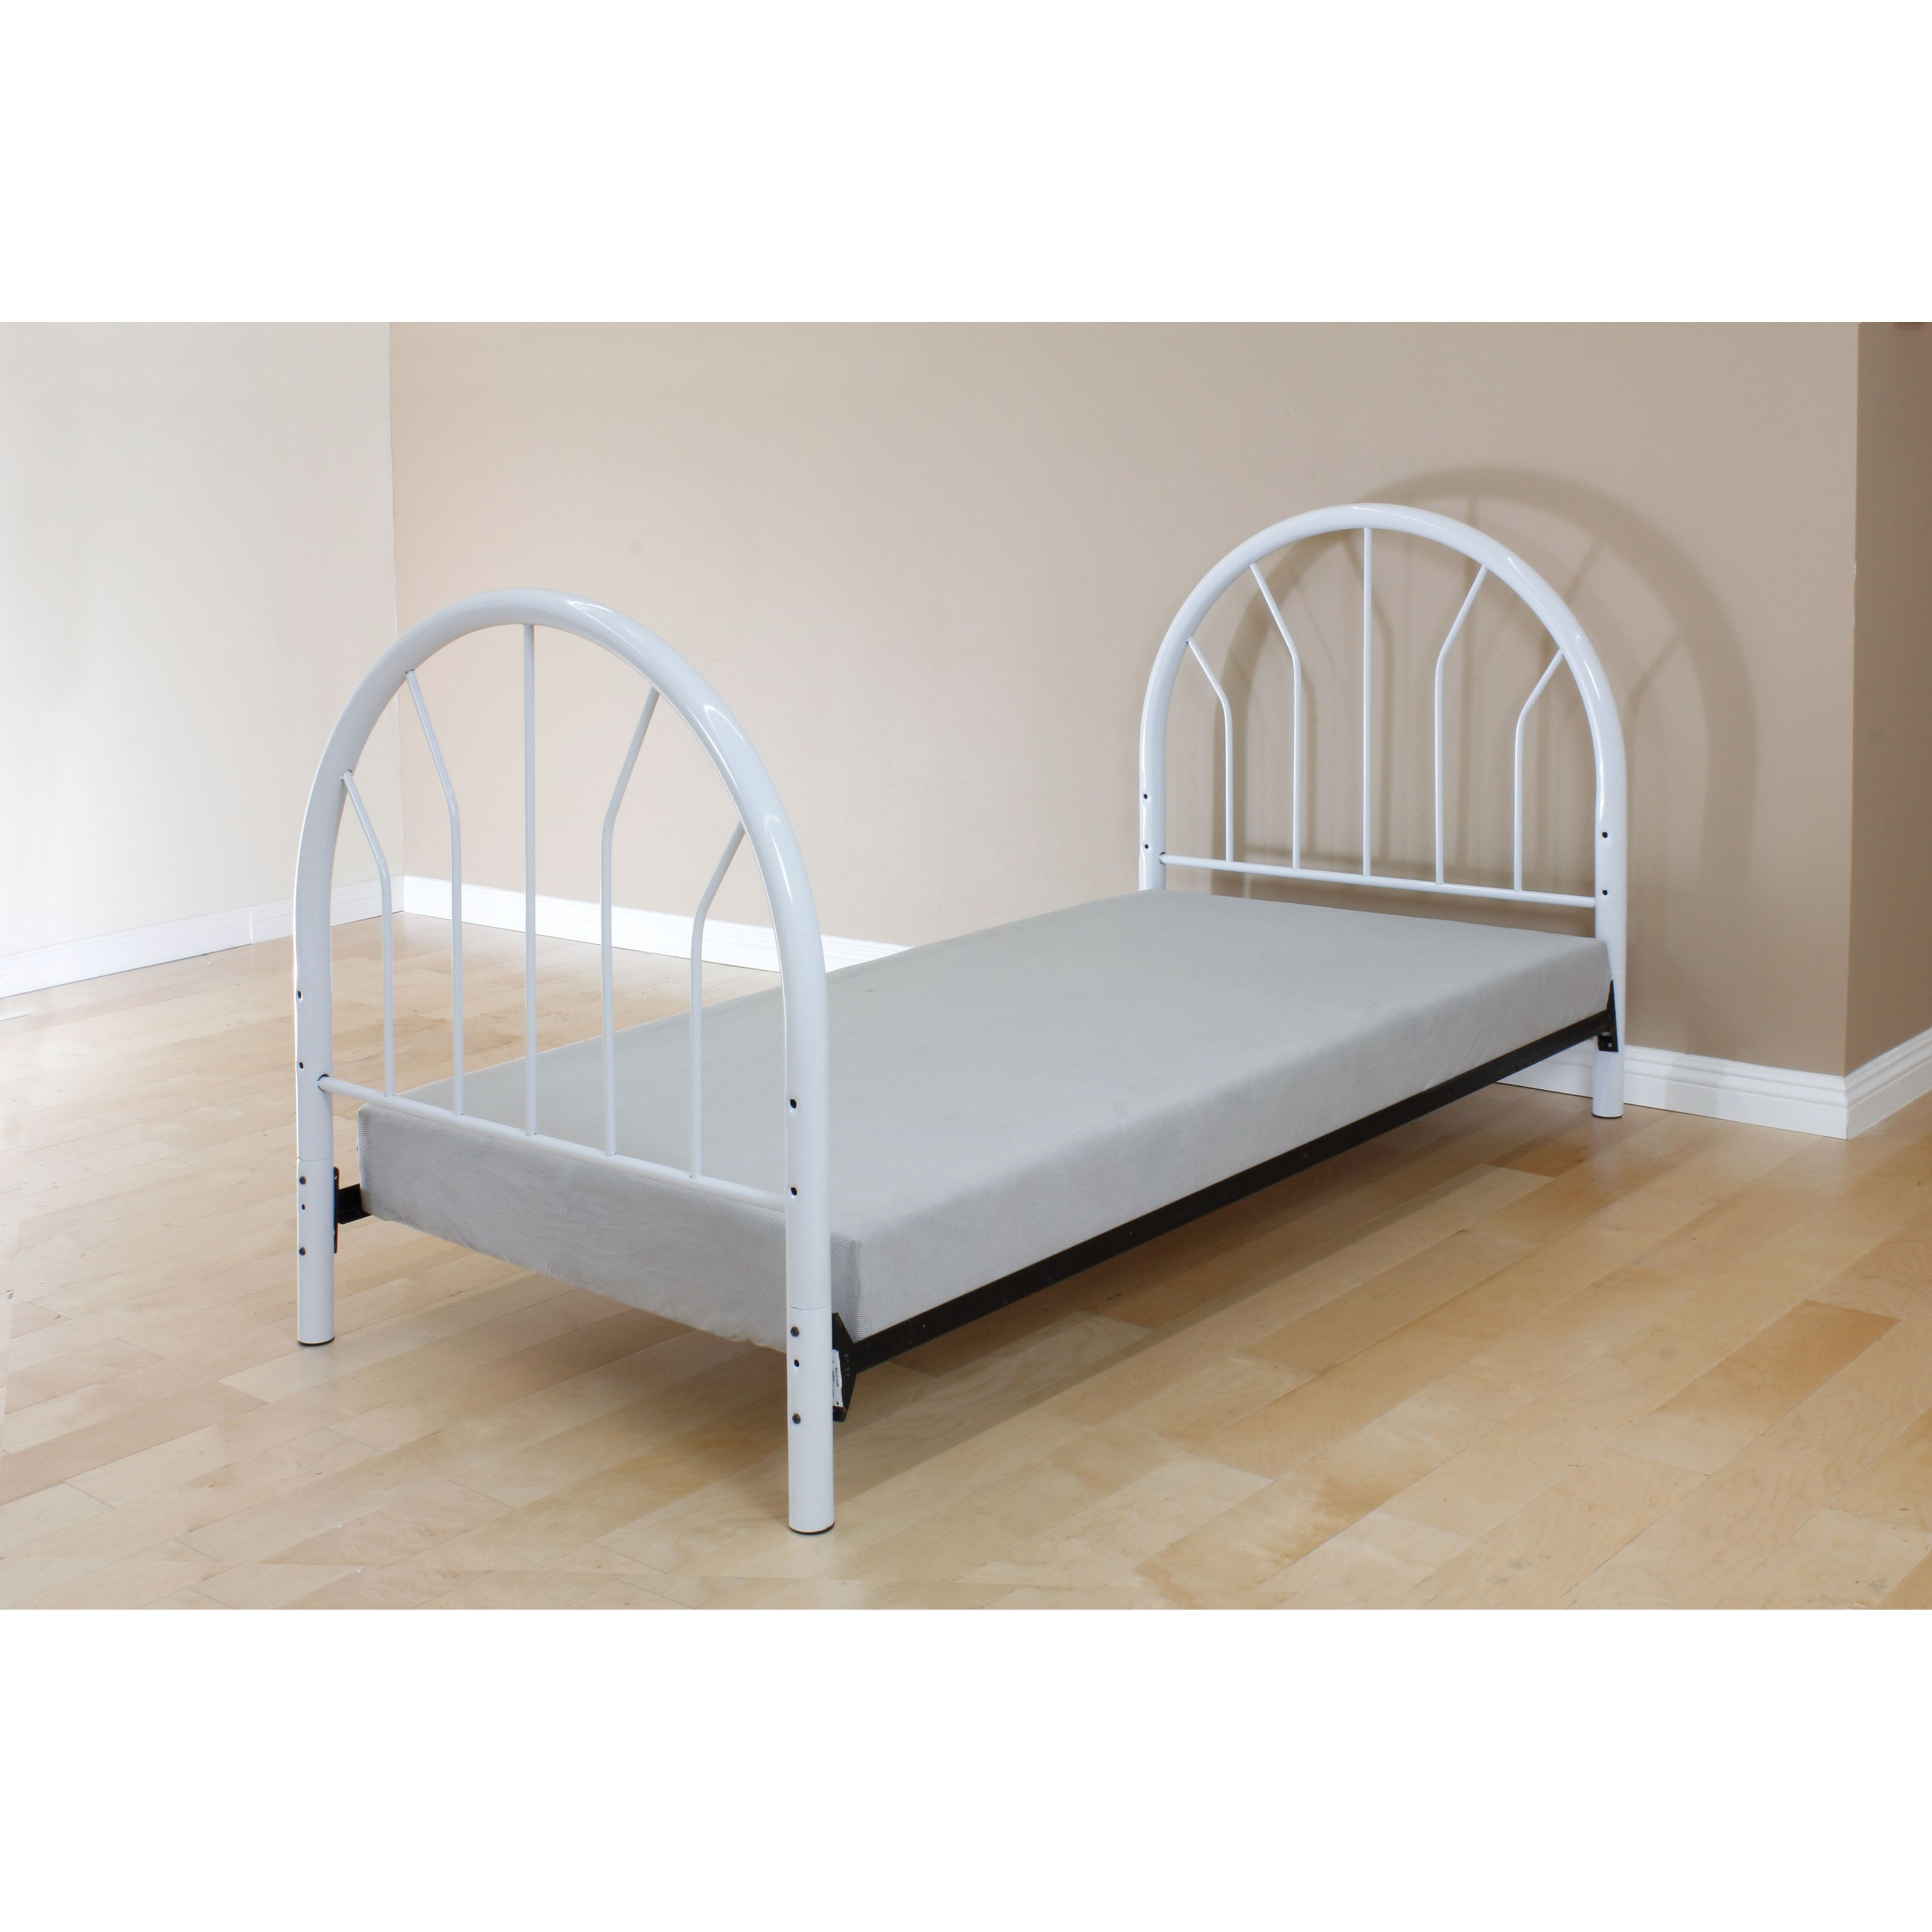 Acme Furniture Silhouette 02054w Kids Twin Metal Bed Headboard Footboard Only Del Sol Furniture Panel Beds